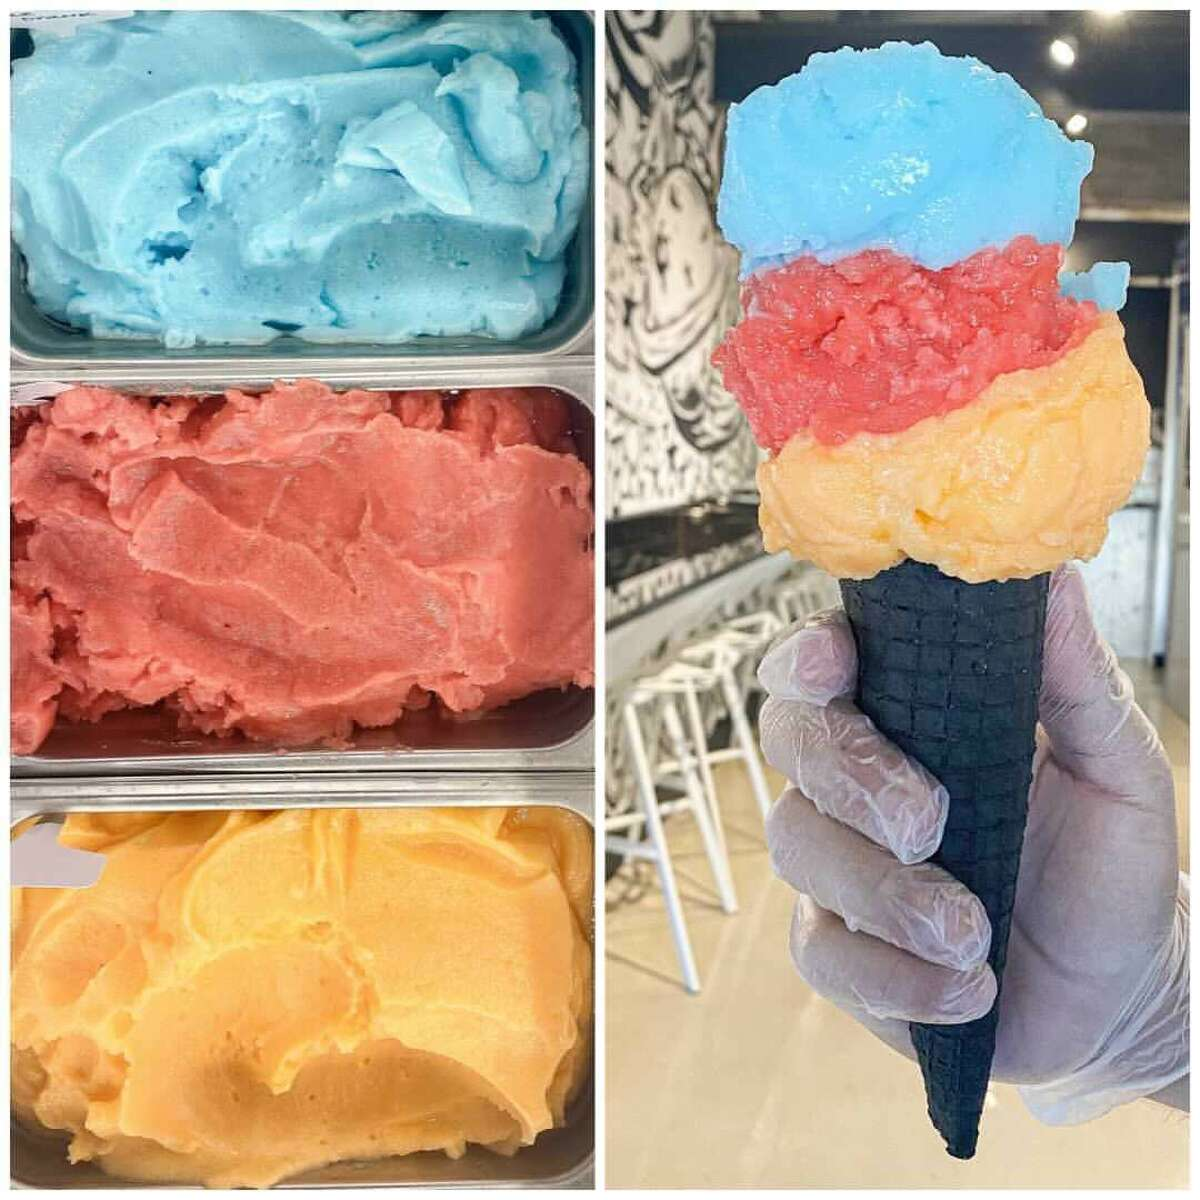 The Broadway ice cream shop unveiled a triple-scoop ice cream cone - with muted blue, red and yellow colors - topped into a black cone on Thursday. Black + White says the blue scoop is